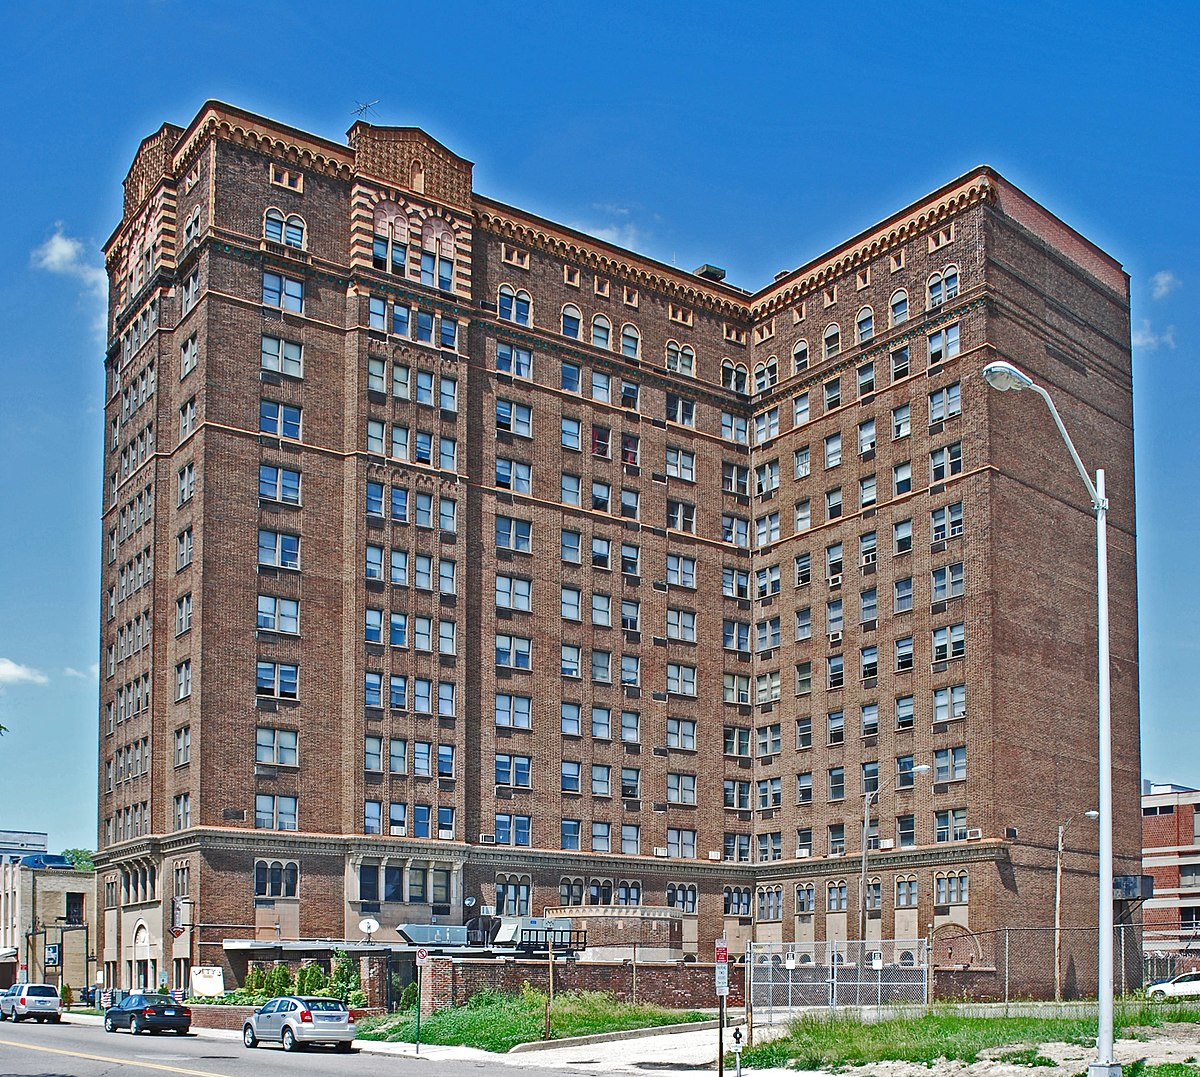 Apartment Flats: Belcrest Apartments (Detroit, Michigan)